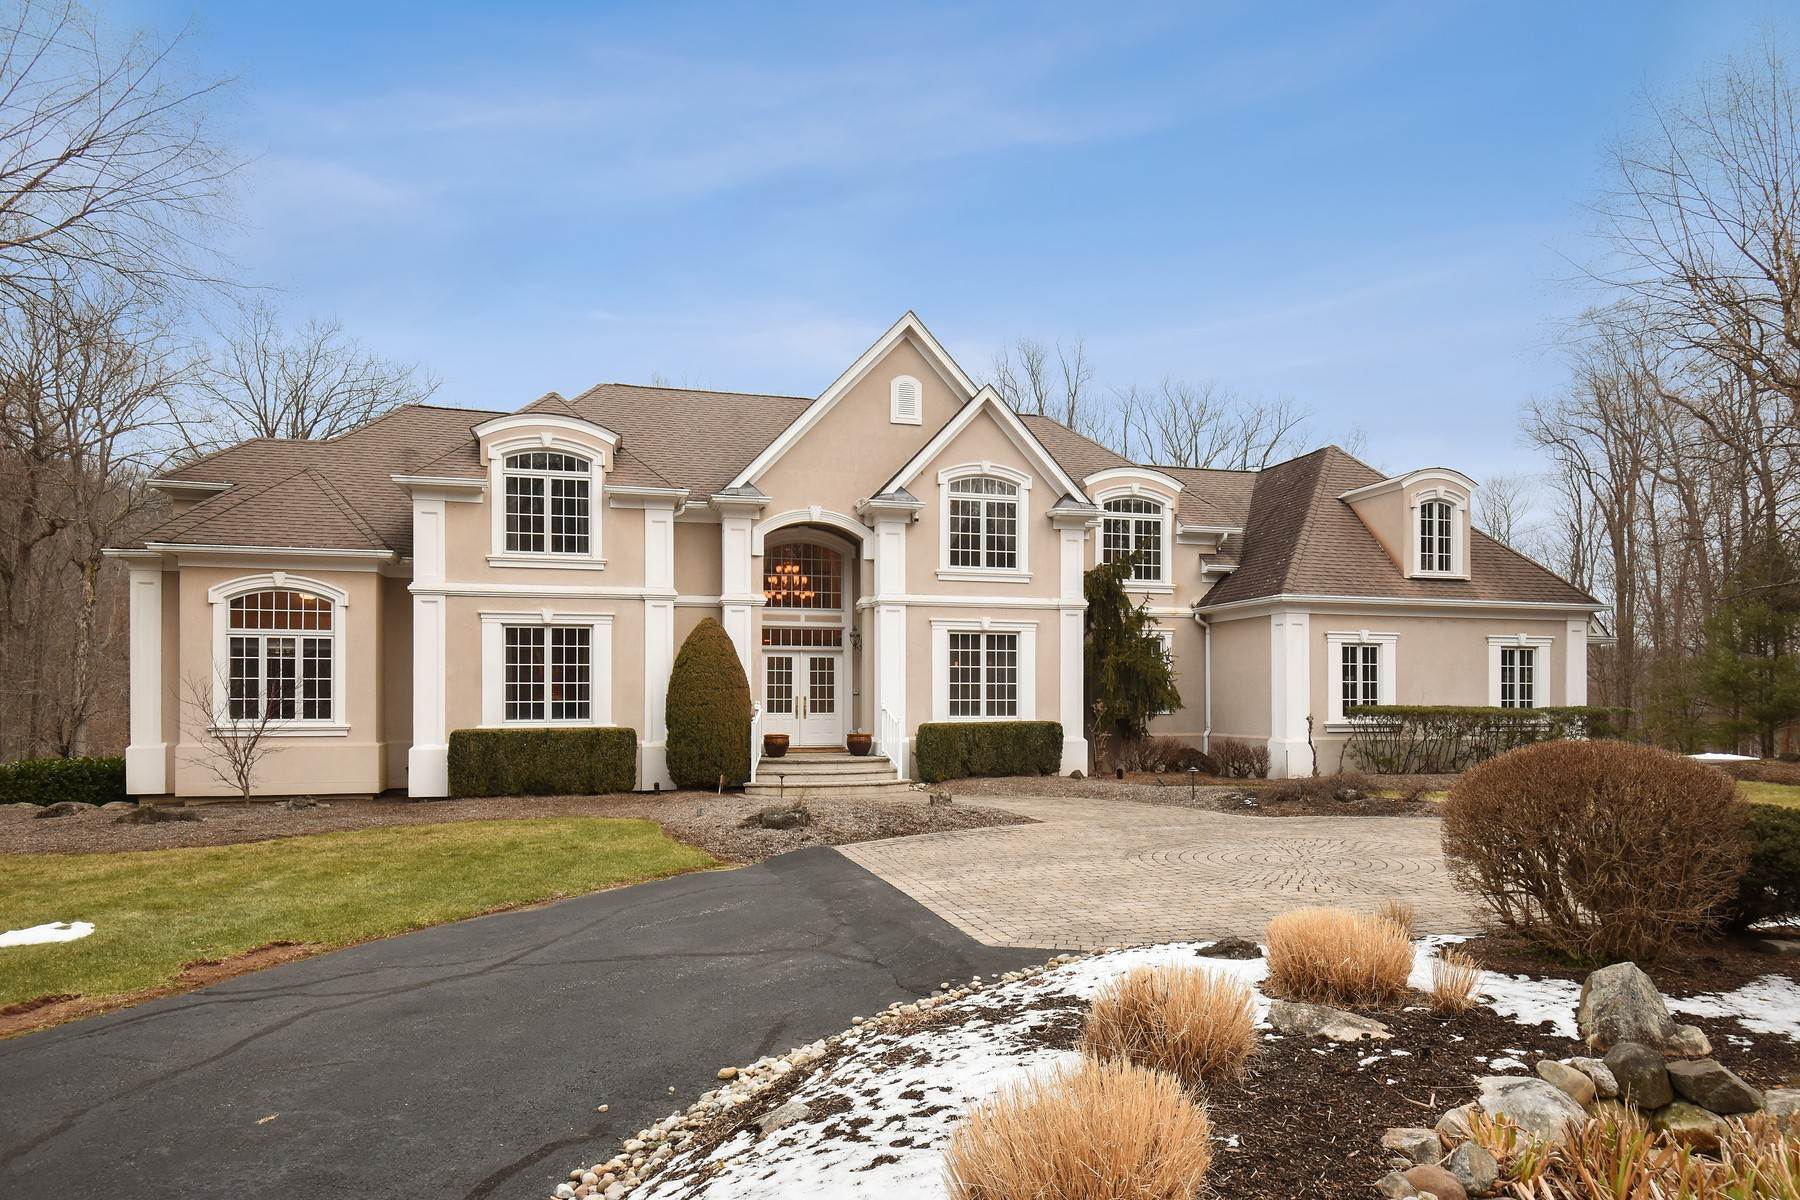 Single Family Homes for Sale at 100 Fayson Lake Road Kinnelon Kinnelon, New Jersey 07405 United States